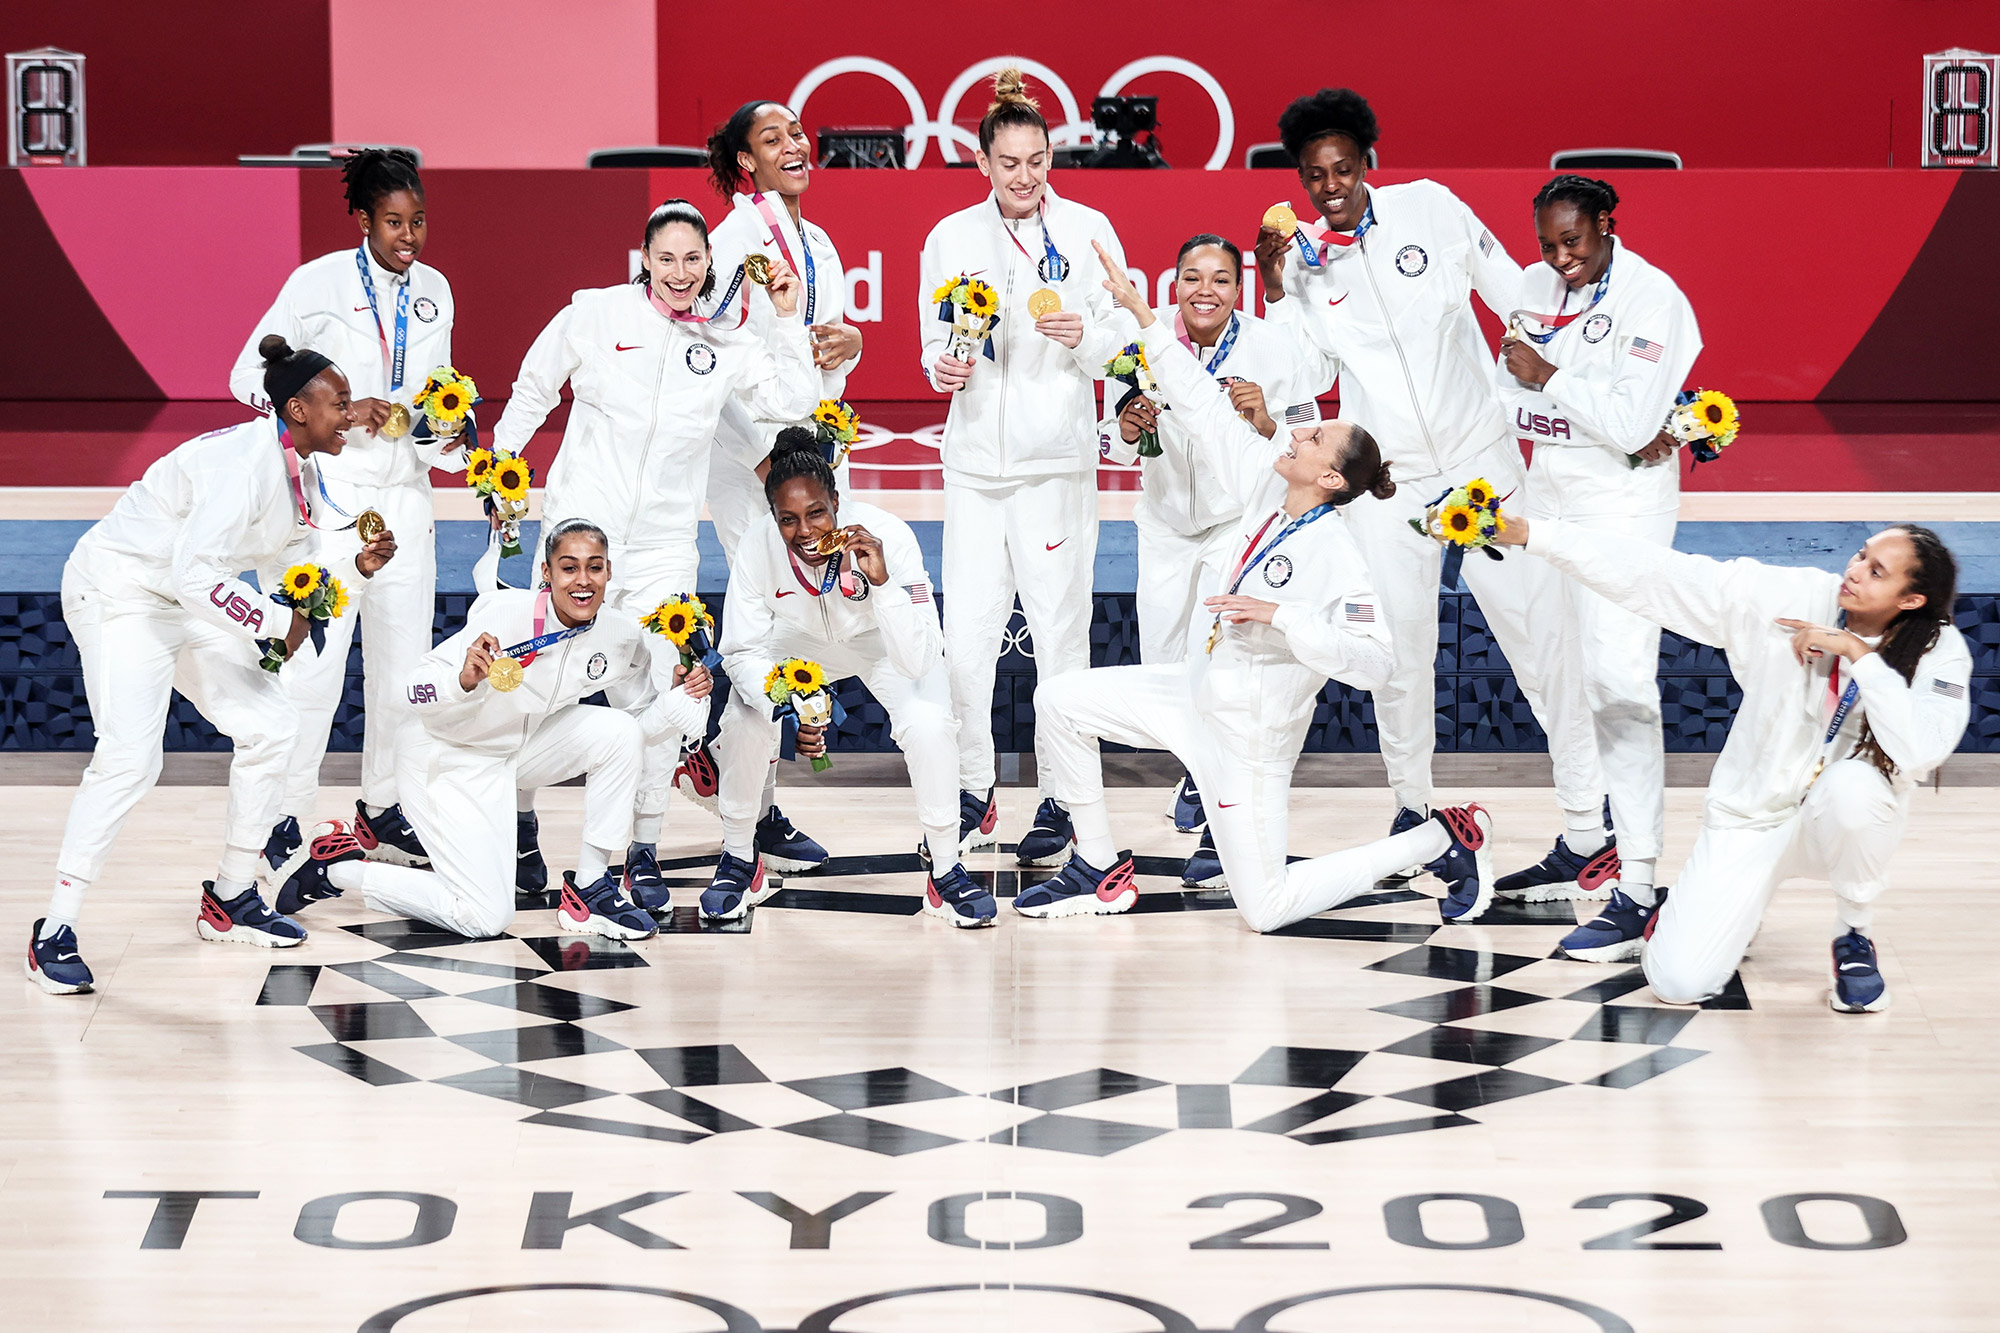 Gold medalists of Team USA pose for a photo on the women's basketball awarding ceremony at Tokyo 2020 Olympic Games, in Tokyo, Japan, Aug. 8, 2021.